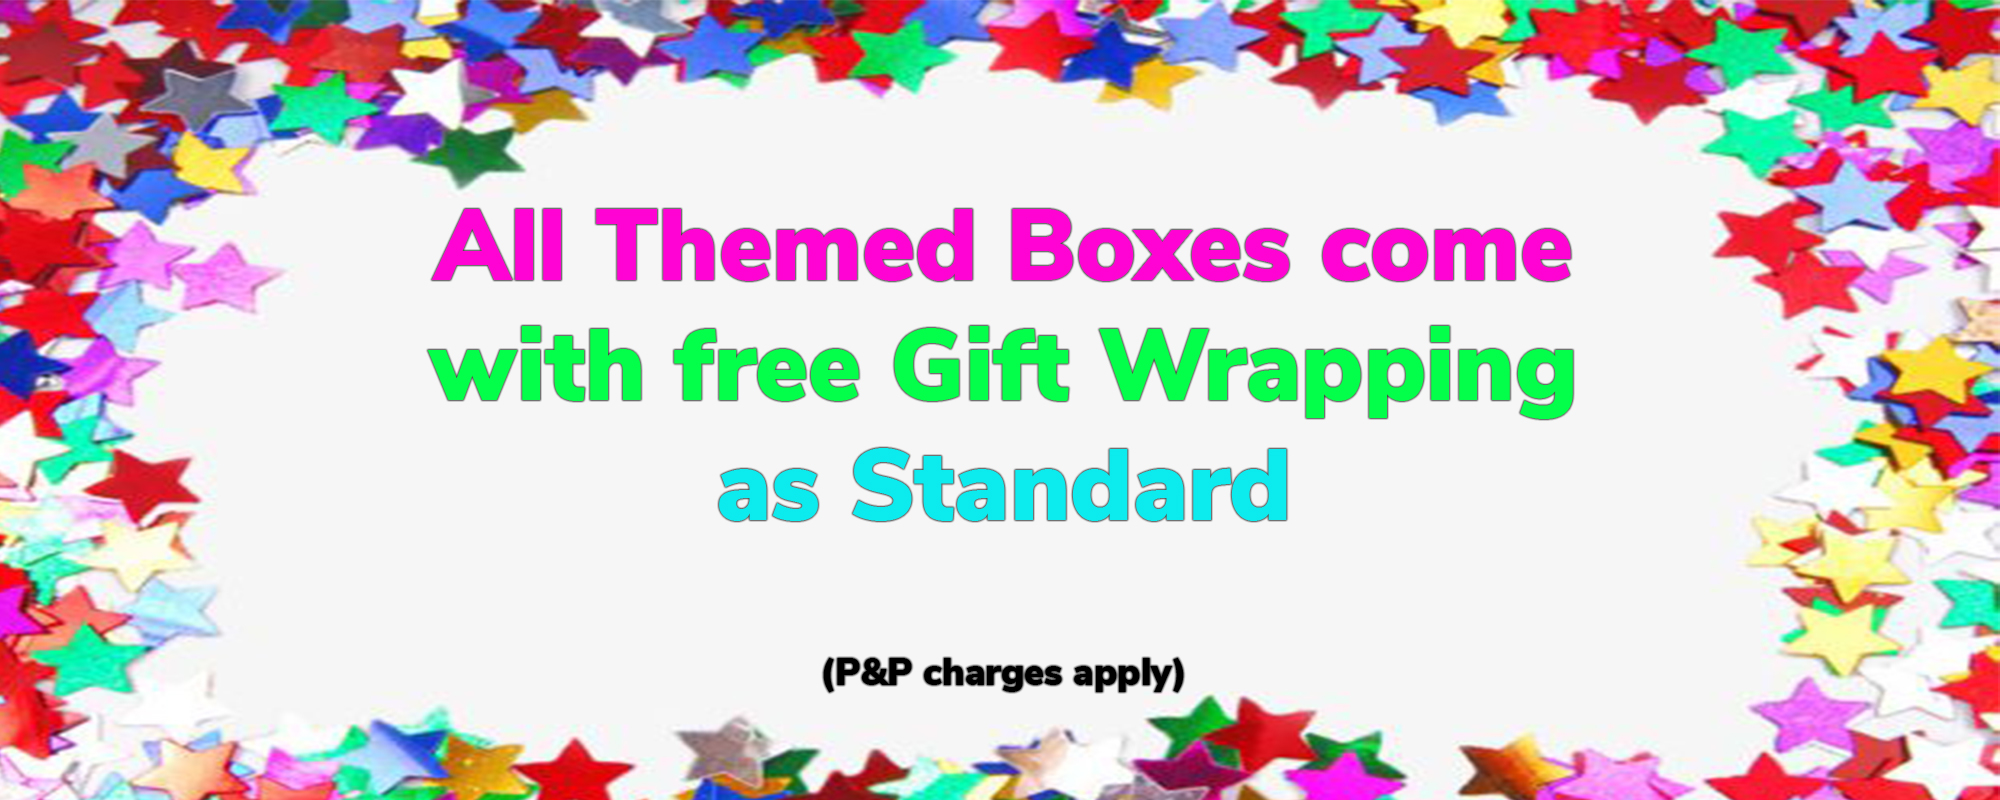 Themed boxes free giftwrap